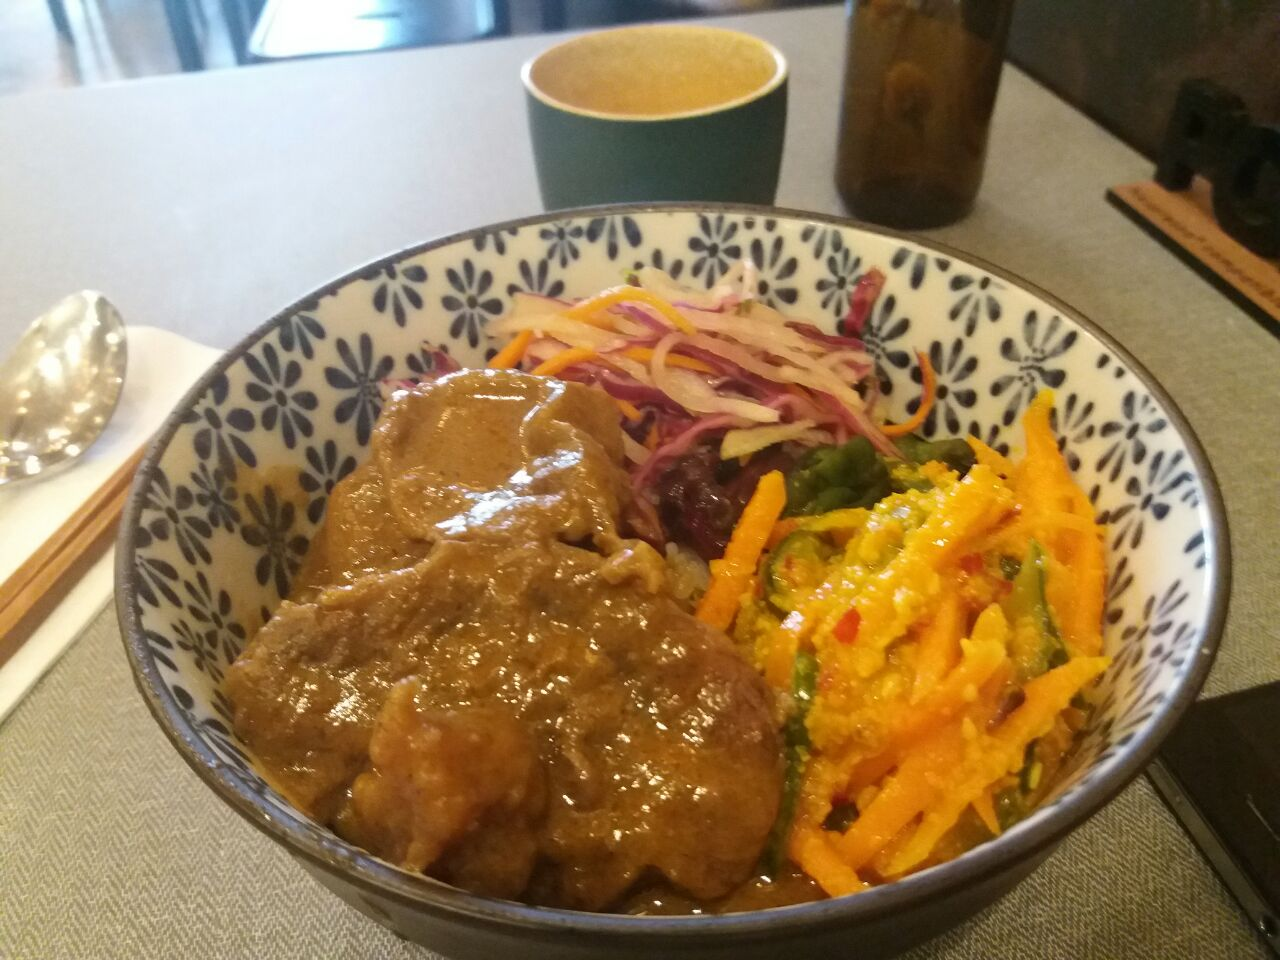 Heirloom Rendang Donburi